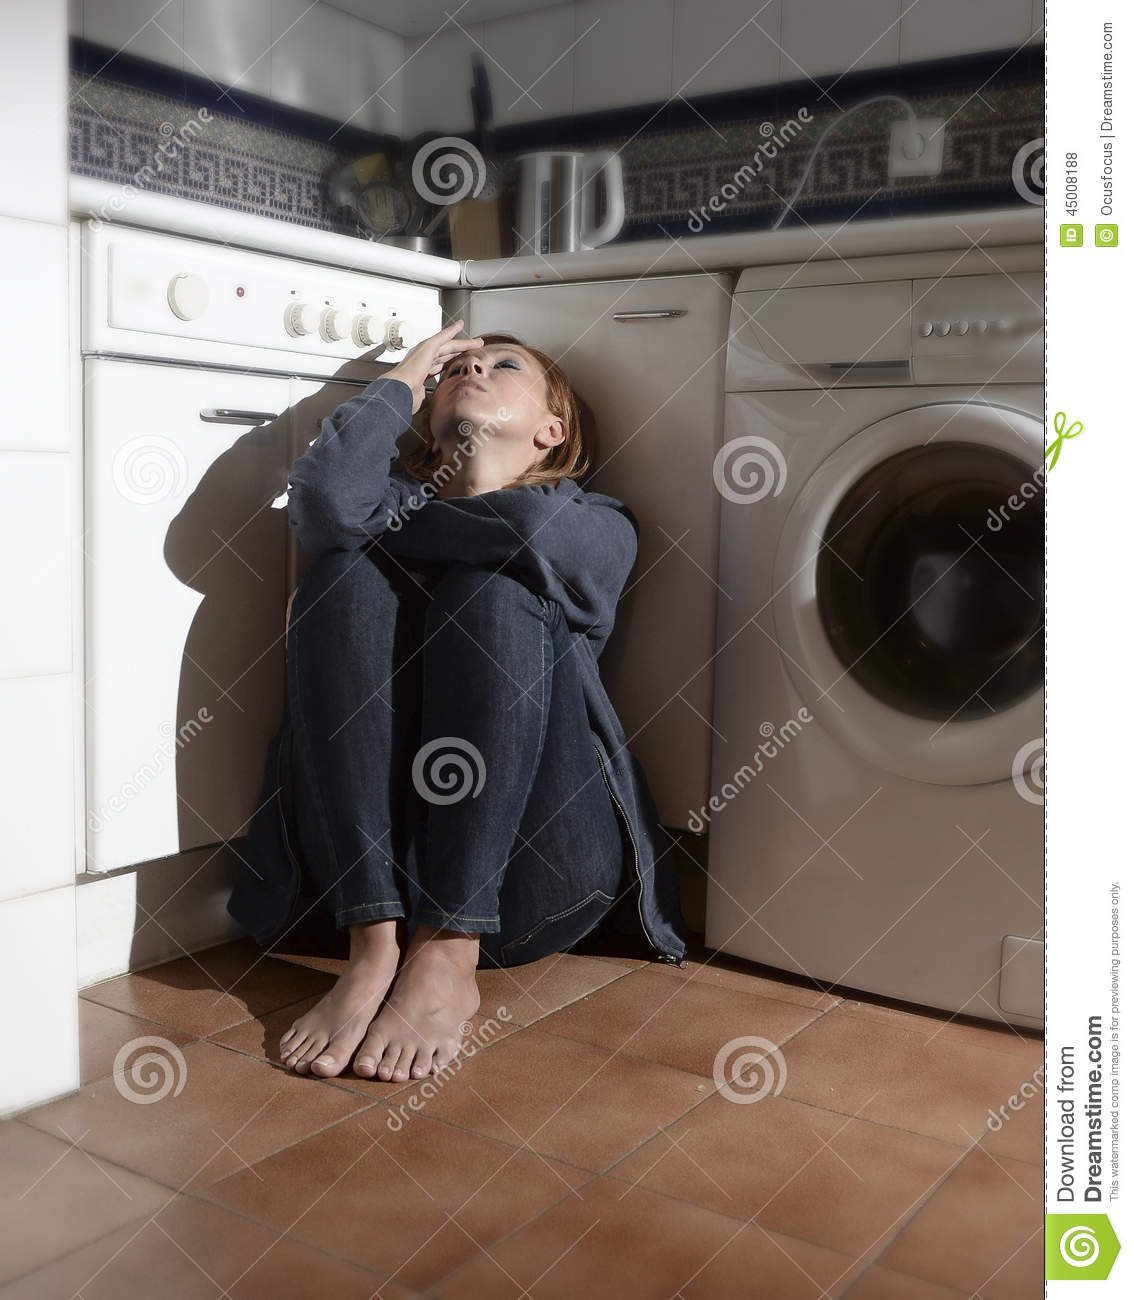 I Cried For You On The Kitchen Floor: Lonely And Sick Woman Sitting On Kitchen Floor In Stress